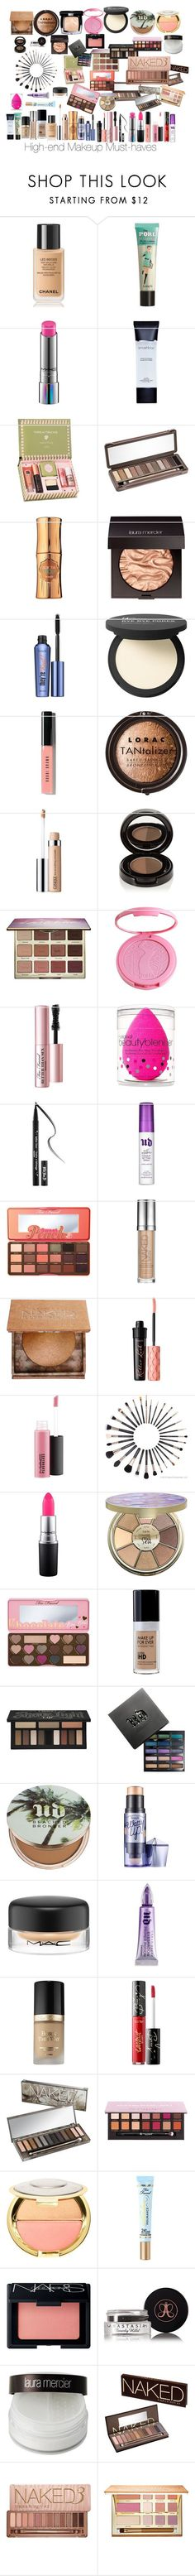 """High End Makeup Must-haves"" by jerzeypeach ❤️ liked on Polyvore featuring beauty, Chanel, Benefit, MAC Cosmetics, Smashbox, Urban Decay, Hoola, Laura Mercier, It Cosmetics and Bobbi Brown Cosmetics"